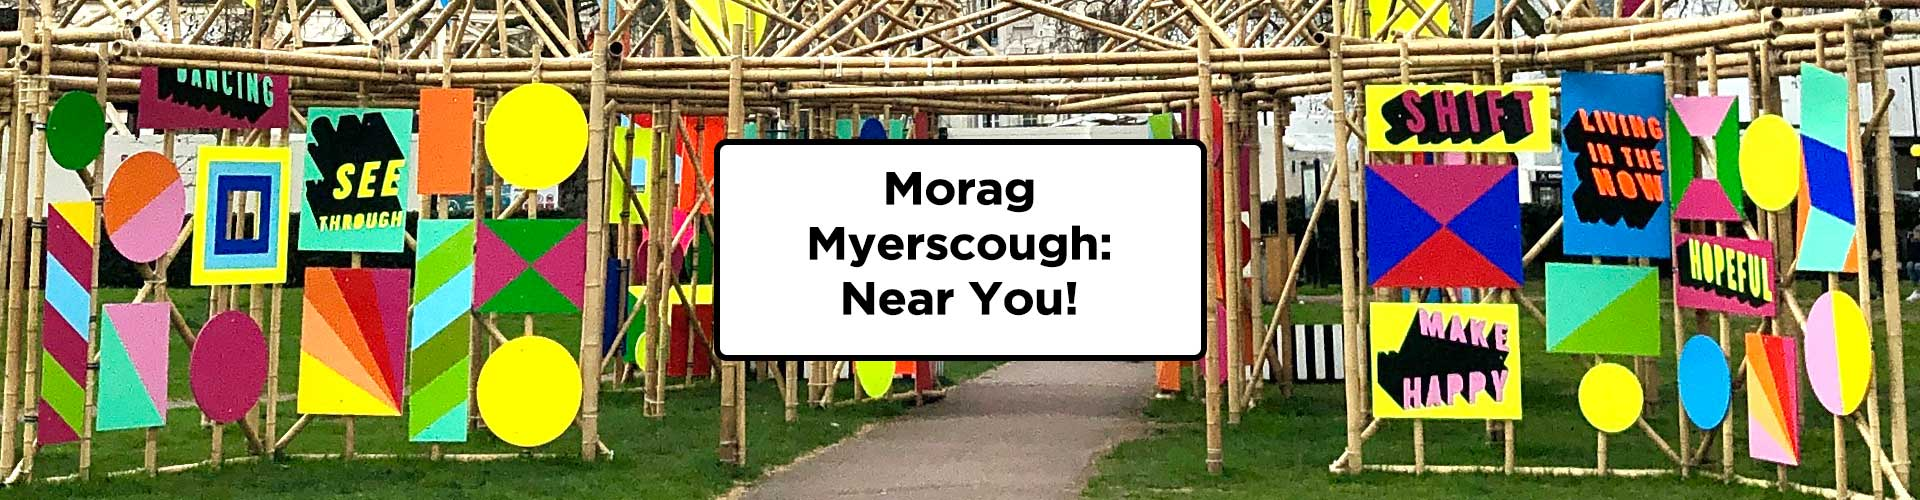 Morag Myerscough: Near You!